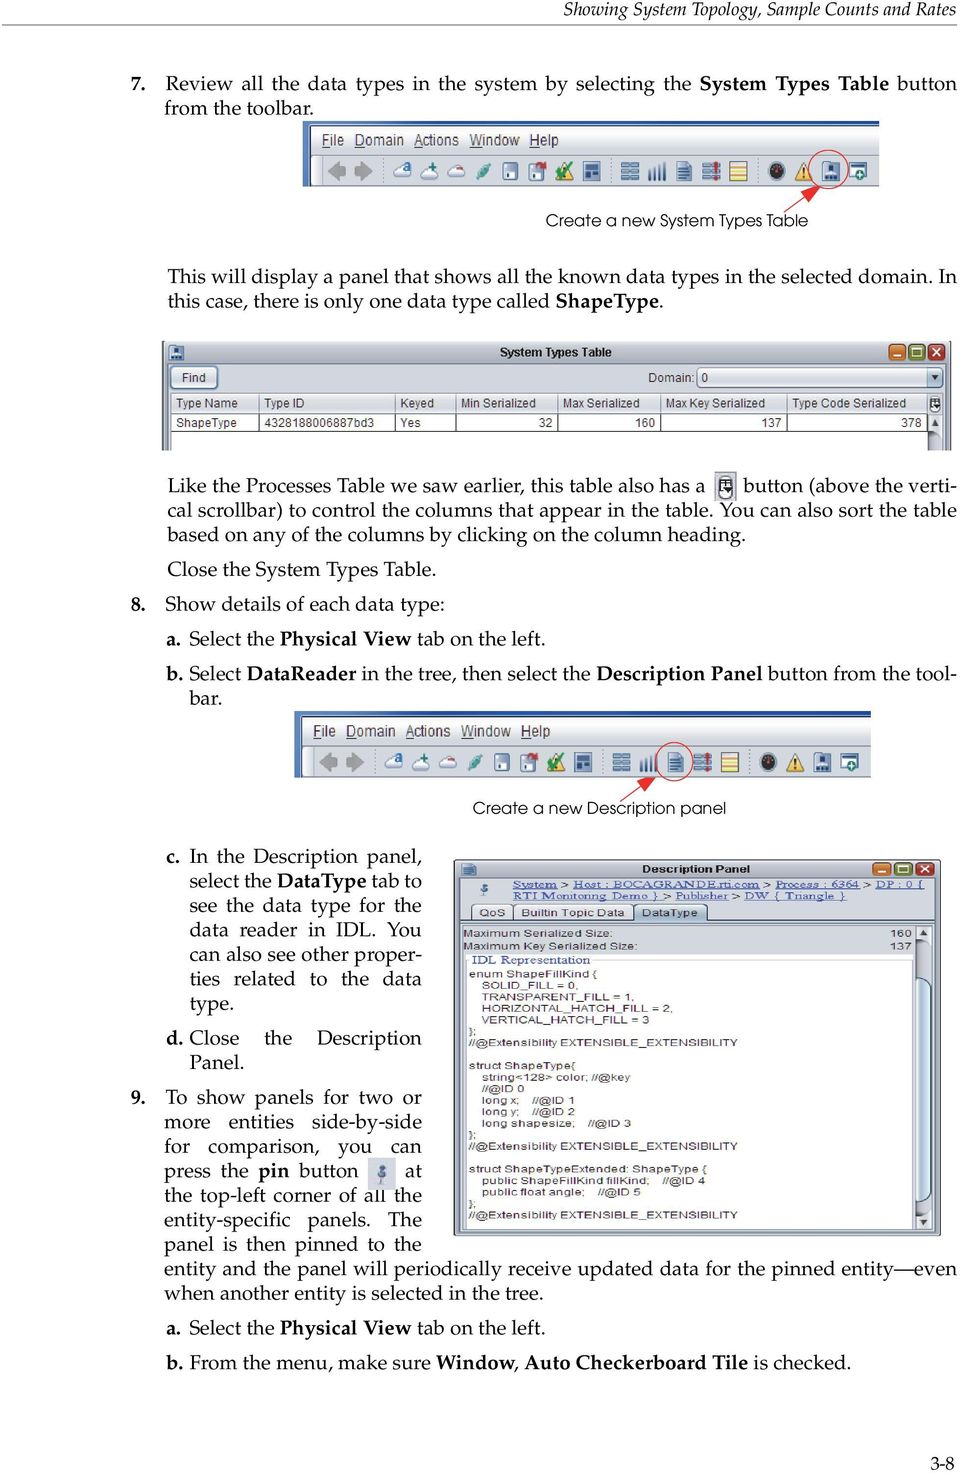 RTI Monitor  Getting Started Guide - PDF